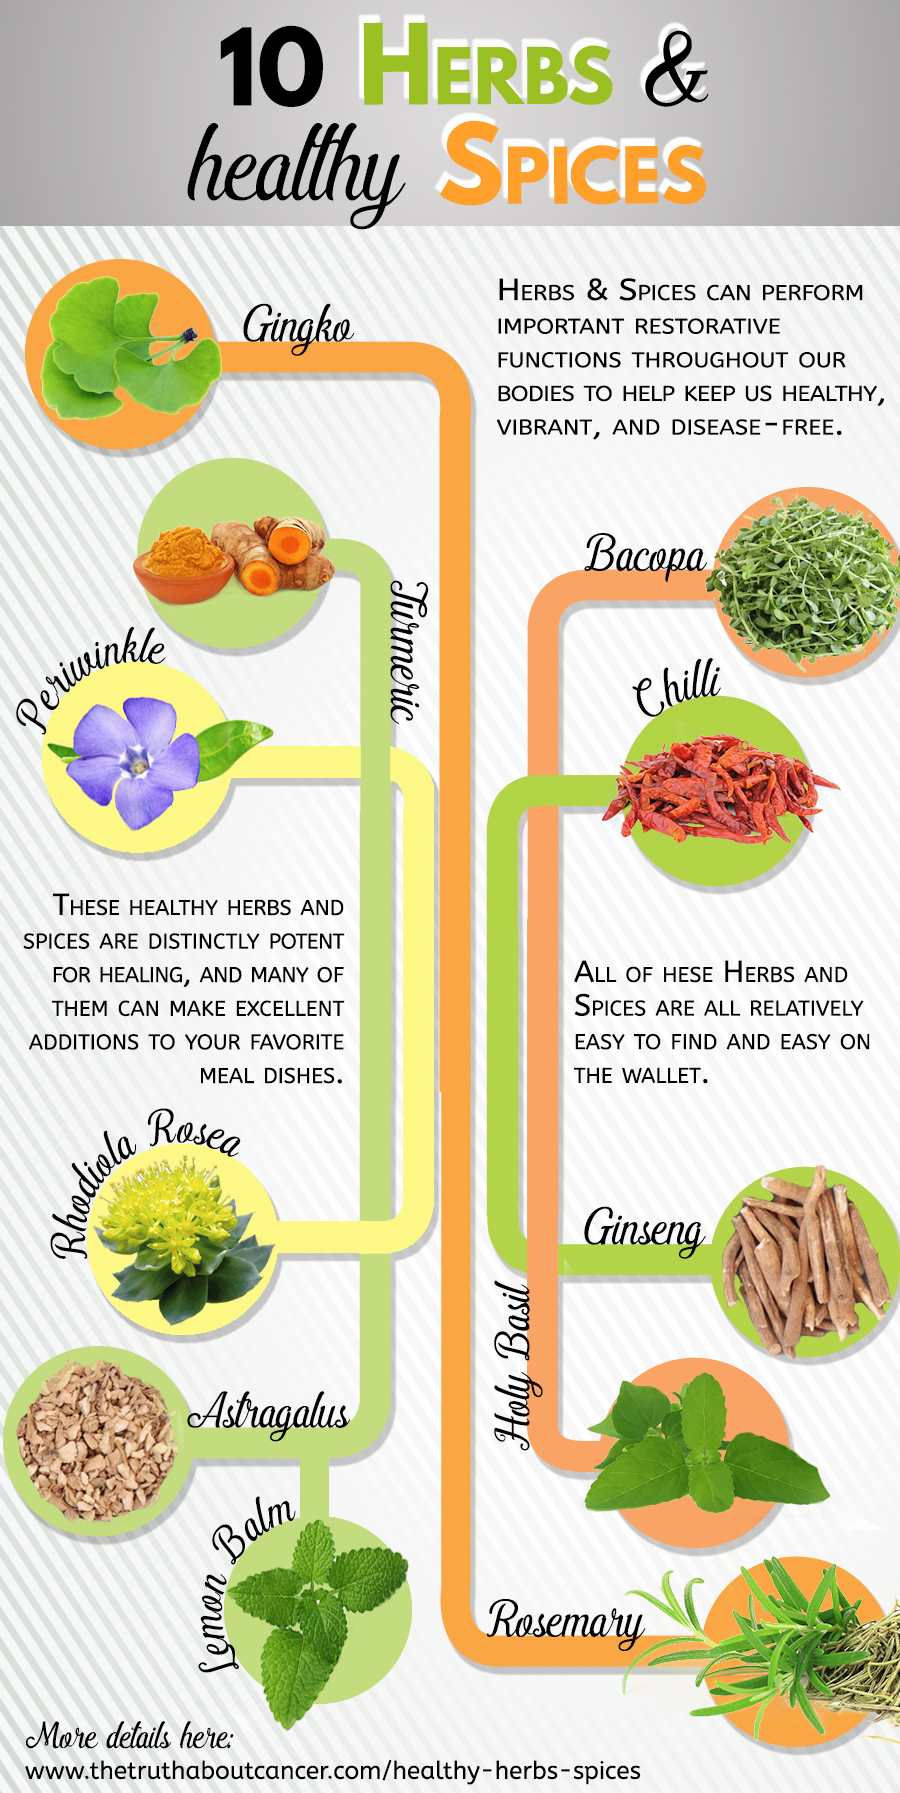 11 Healthy Herbs & Spices That Help Keep Disease At Bay